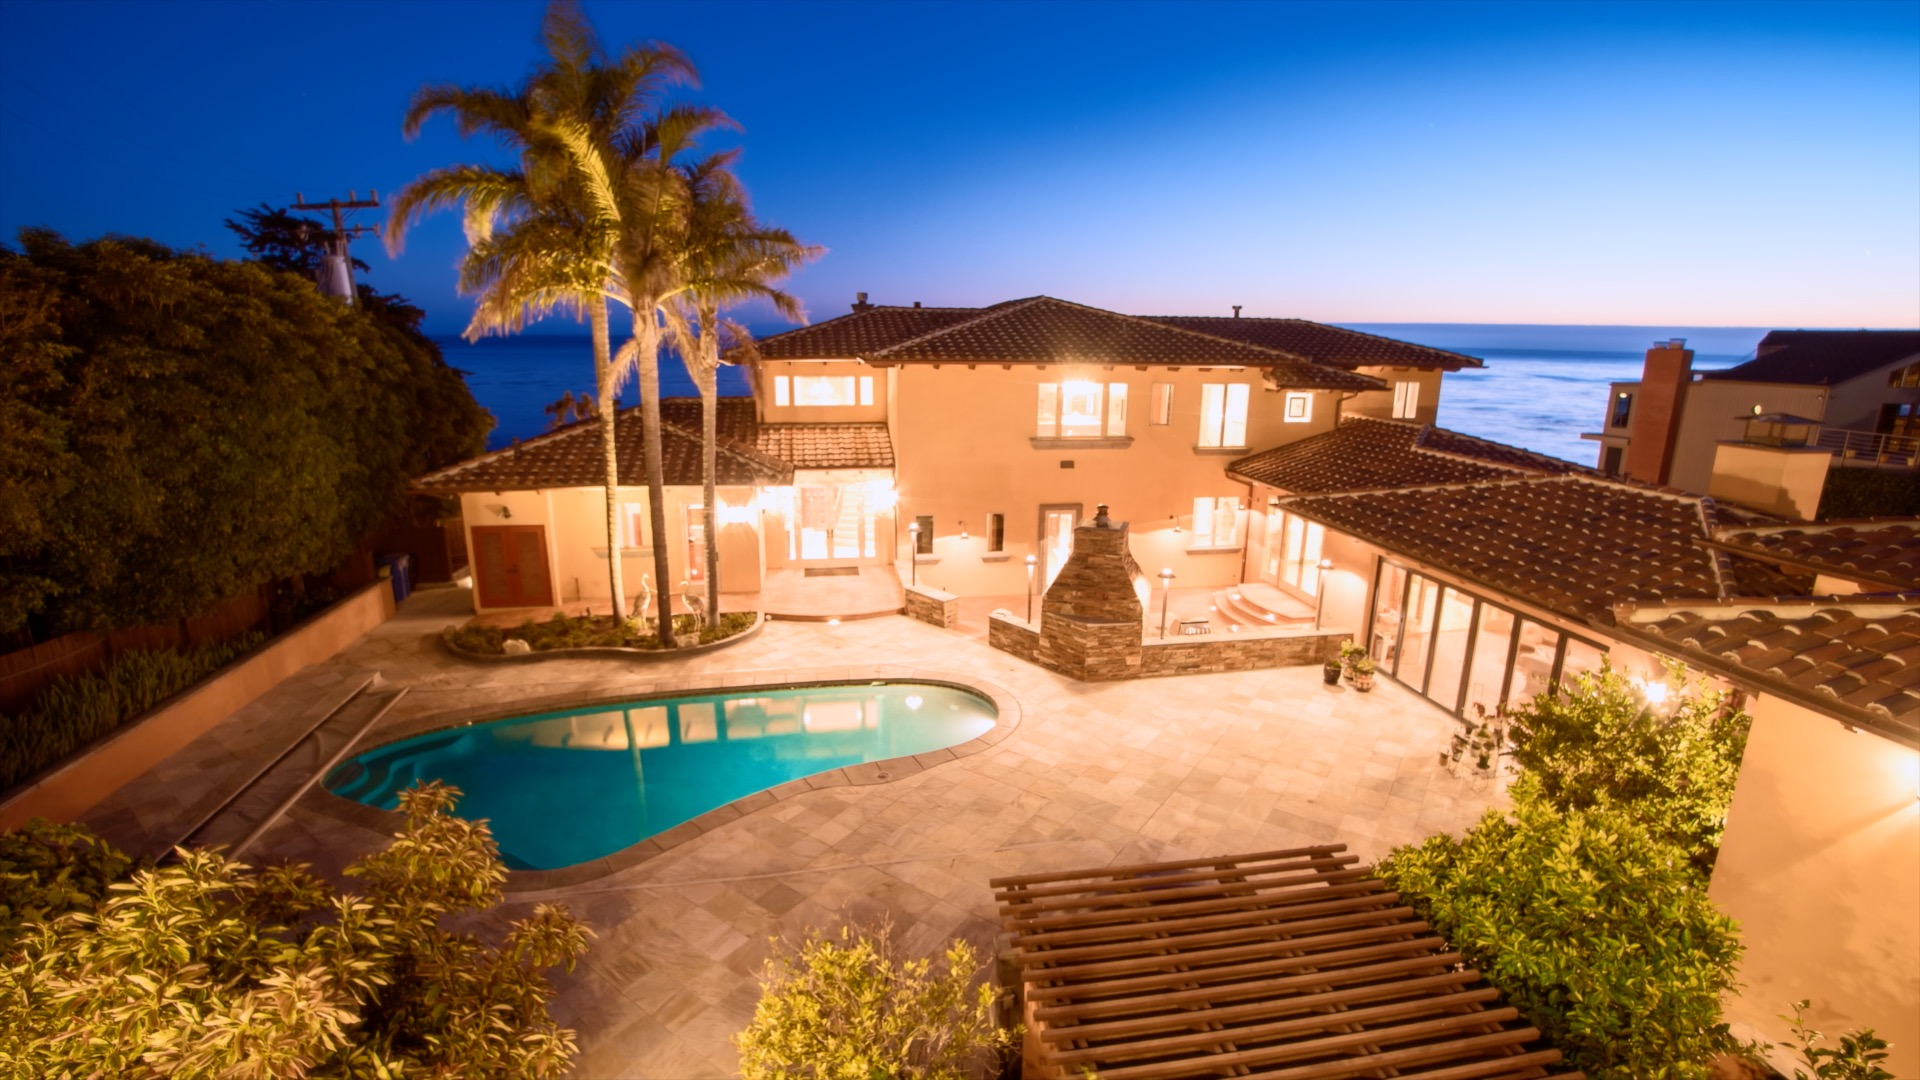 The sun sets on the Pacific Ocean behind this beautiful home in Pismo Beach, CA.